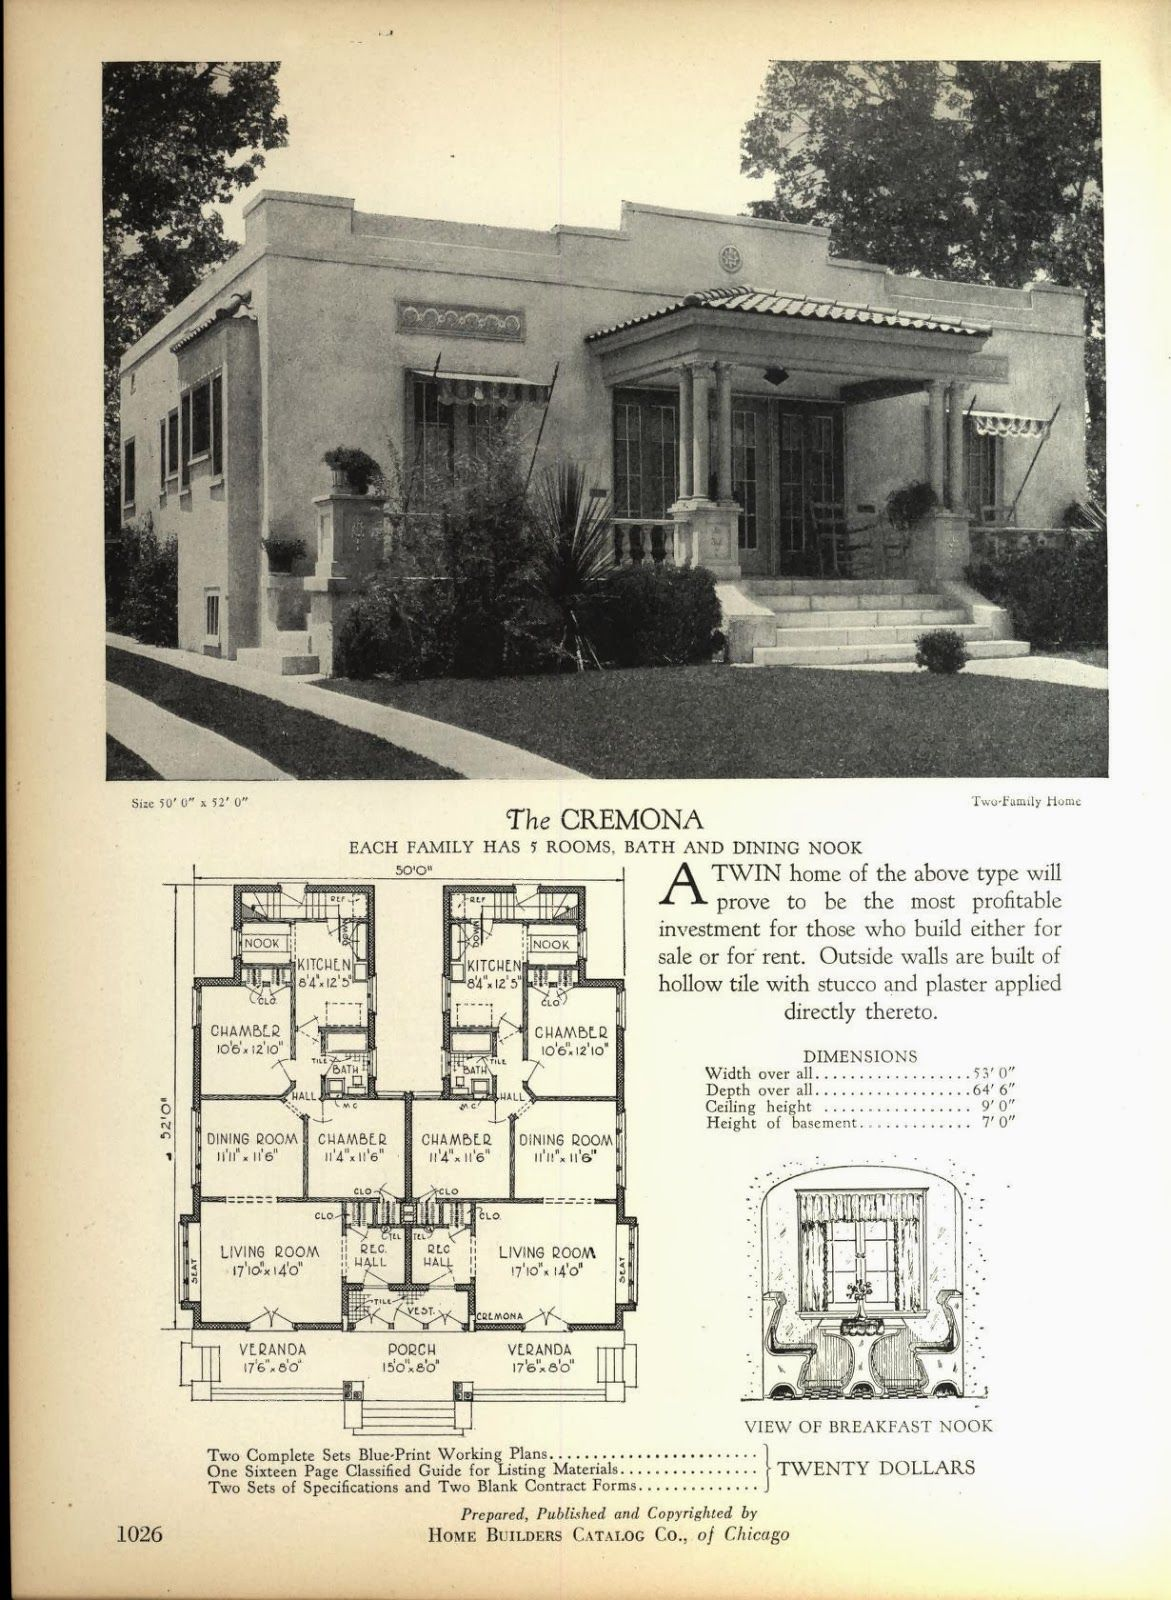 http://www.artdecoresource.com/2014/01/even-more-art-deco-house ...